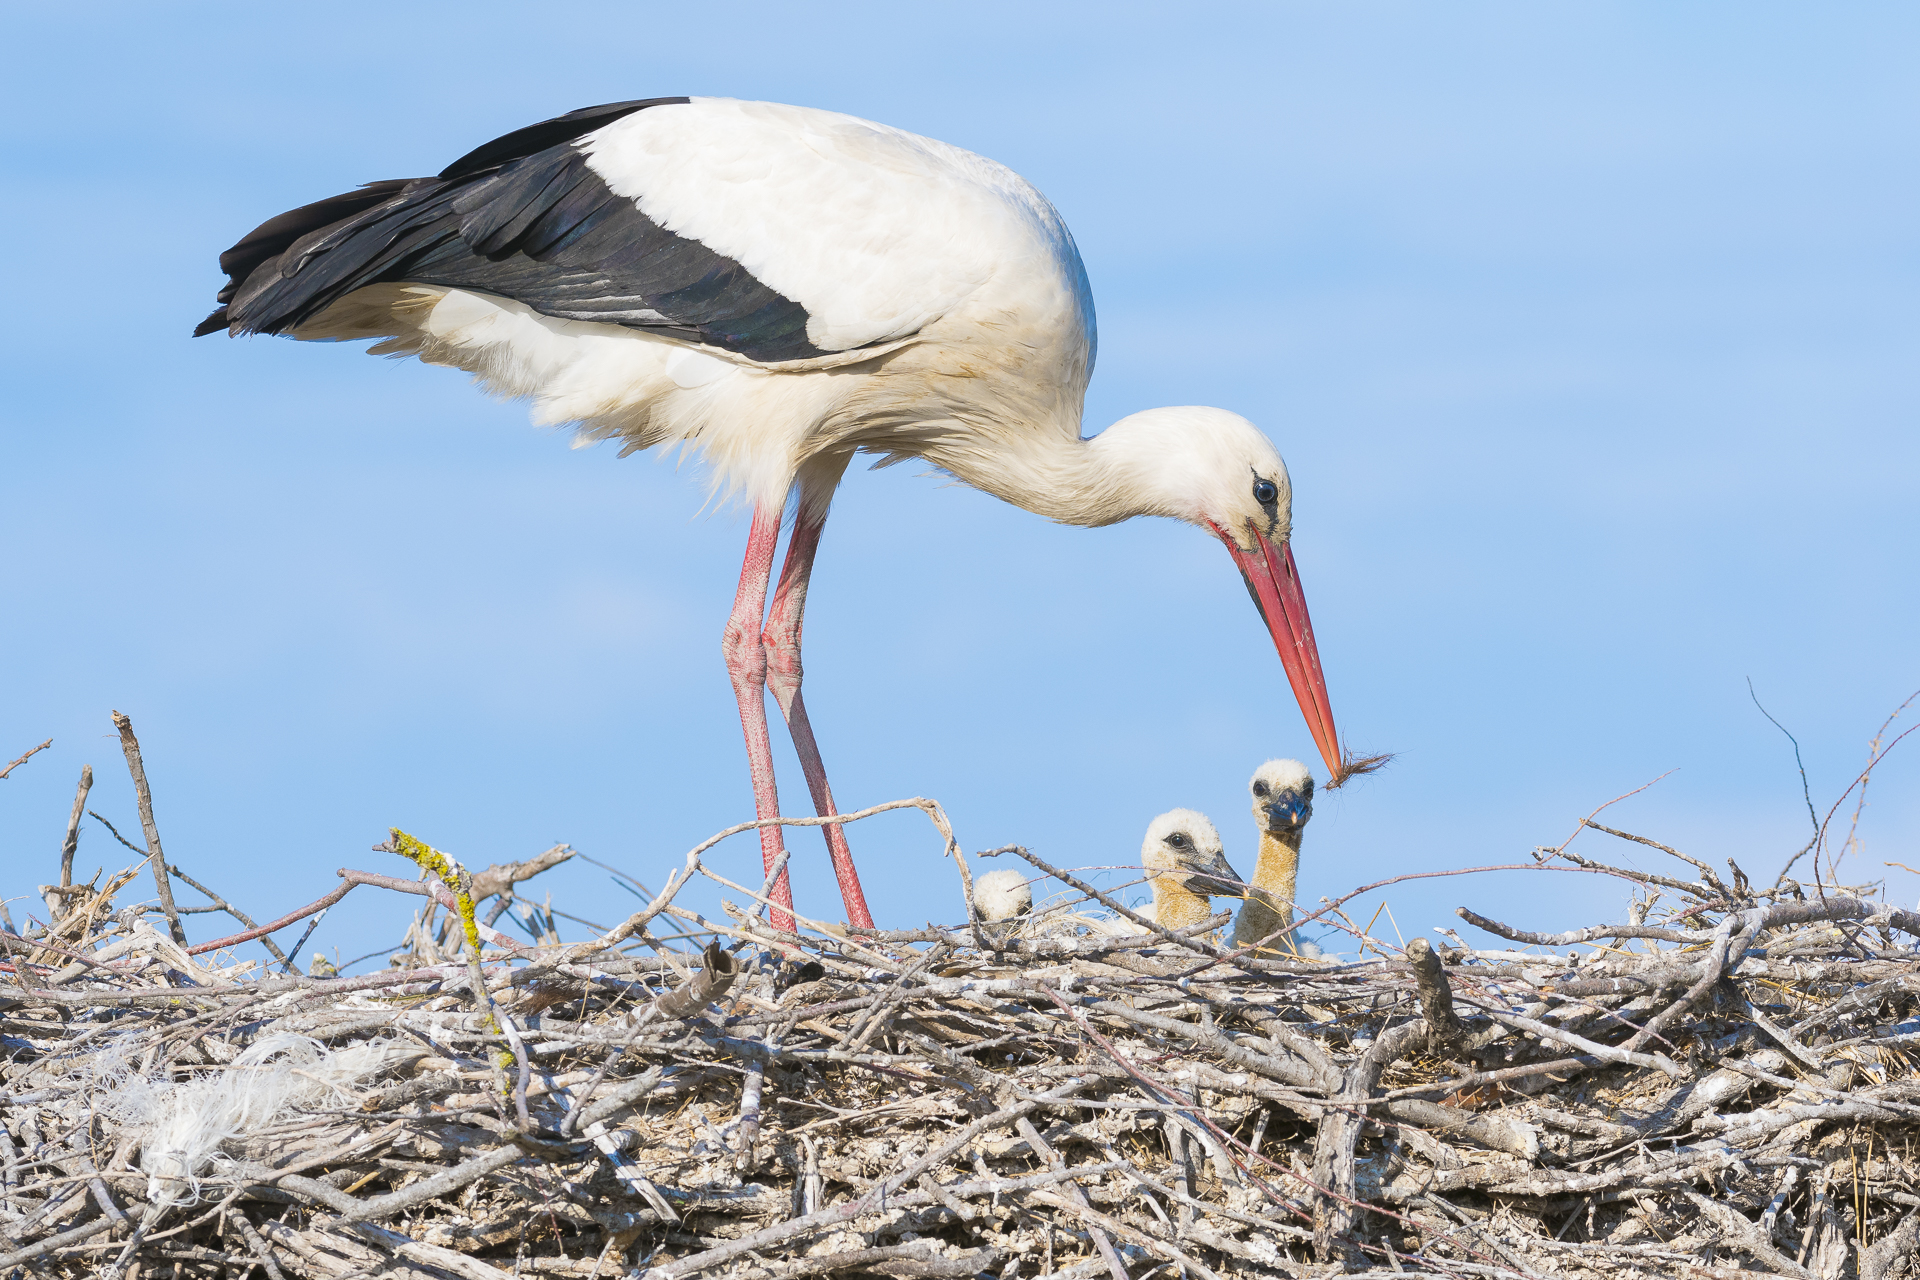 White stork and chicks on their nest. Pont-de-Gau ornithological reserve, Saintes Maries de la Mer, France.